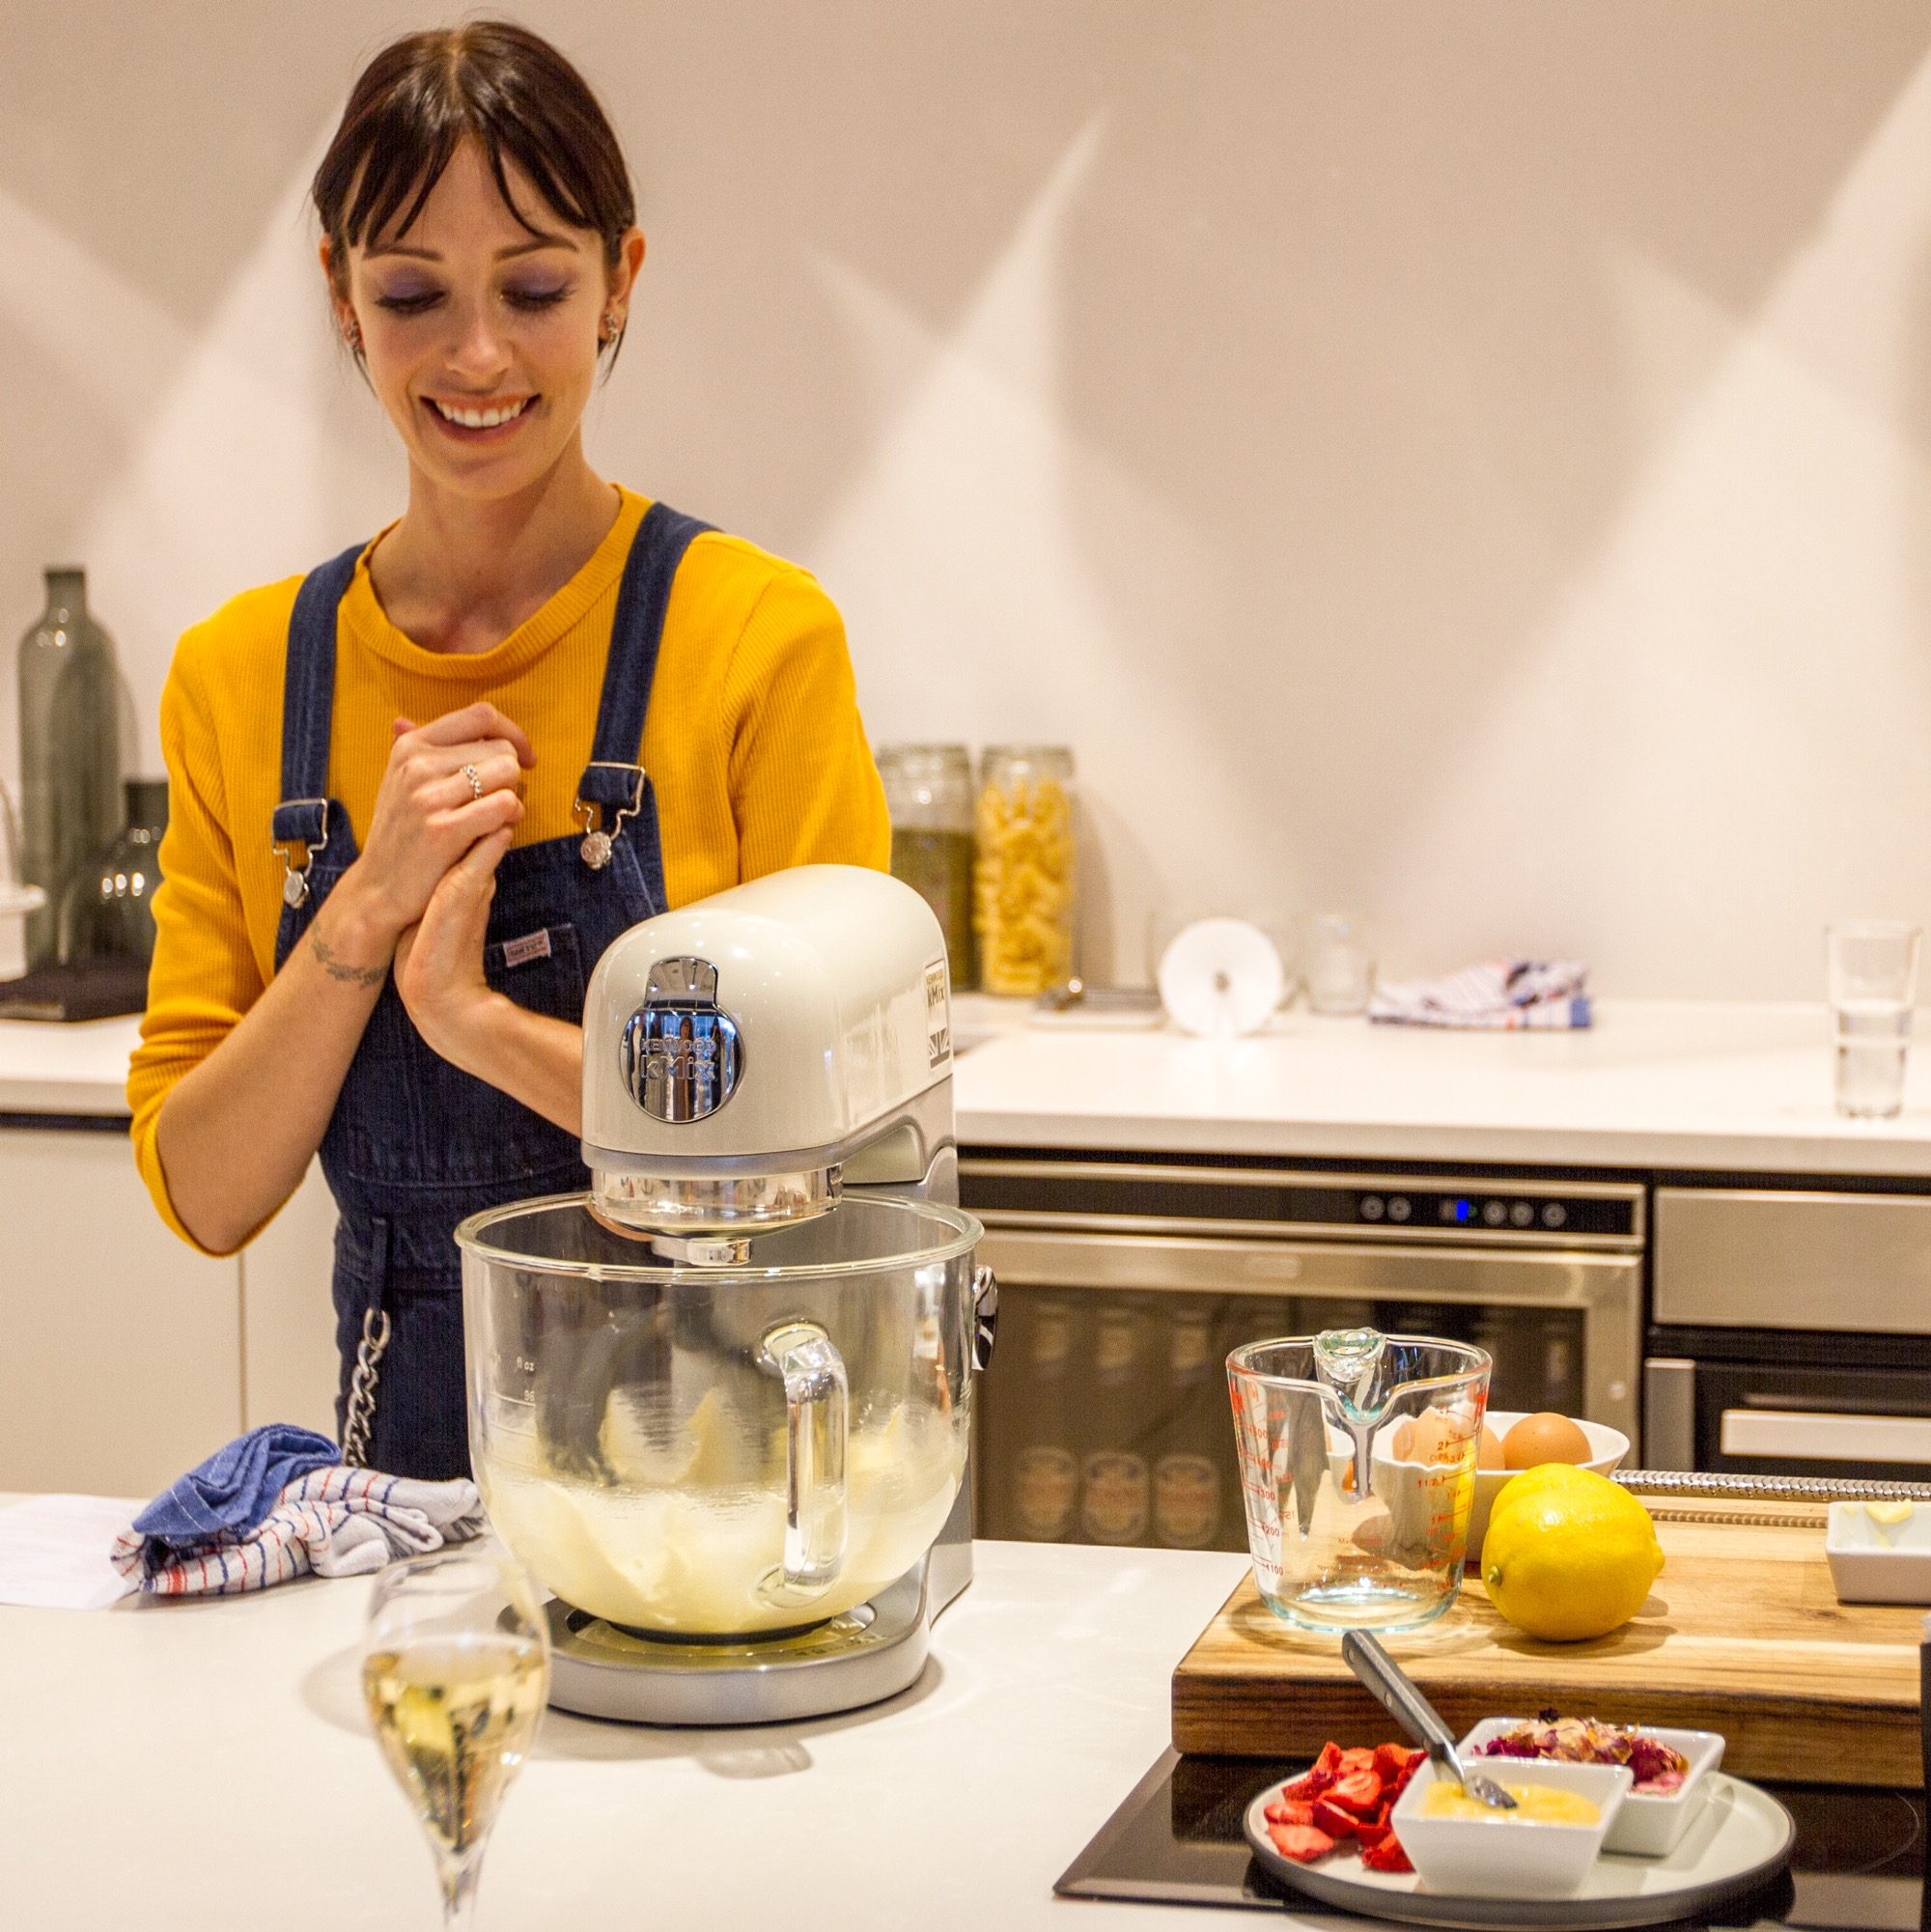 Earlier this year at the Kenwood showroom, demonstrating how to make my Champagne, blackberry and lemon minicakes in the glass bowl kMix.